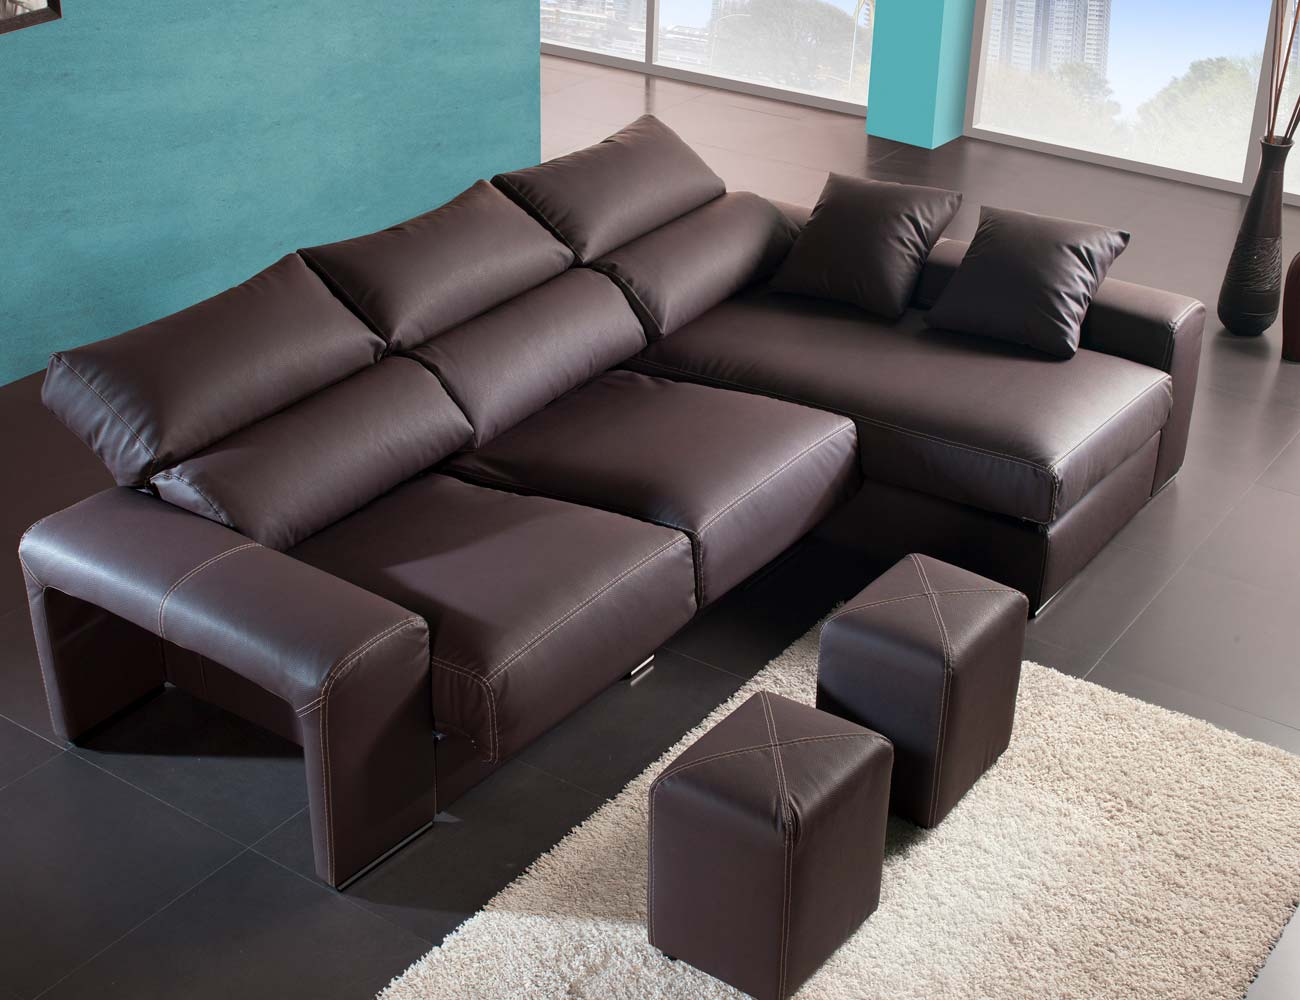 Sofa chaiselongue moderno polipiel chocolate poufs taburetes35